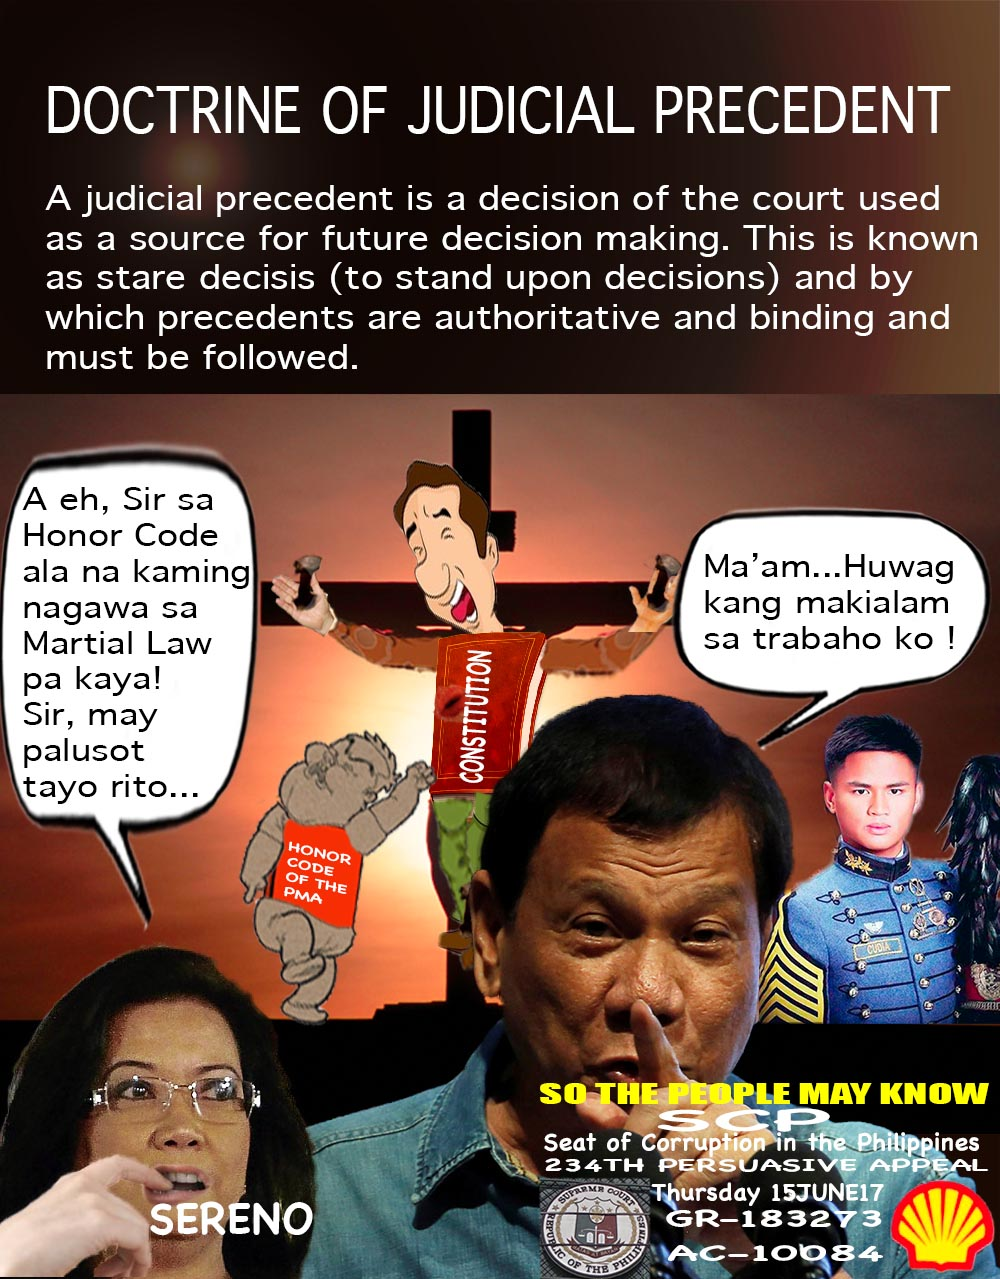 doctrine of judicial precedent Precedent literally means a rule followed or a principle applied previously by a competent authority under similar facts and circumstances if a previous decision by a court is taken as a basis or source for deciding the case under similar facts and circumstances, it is called judicial precedent.